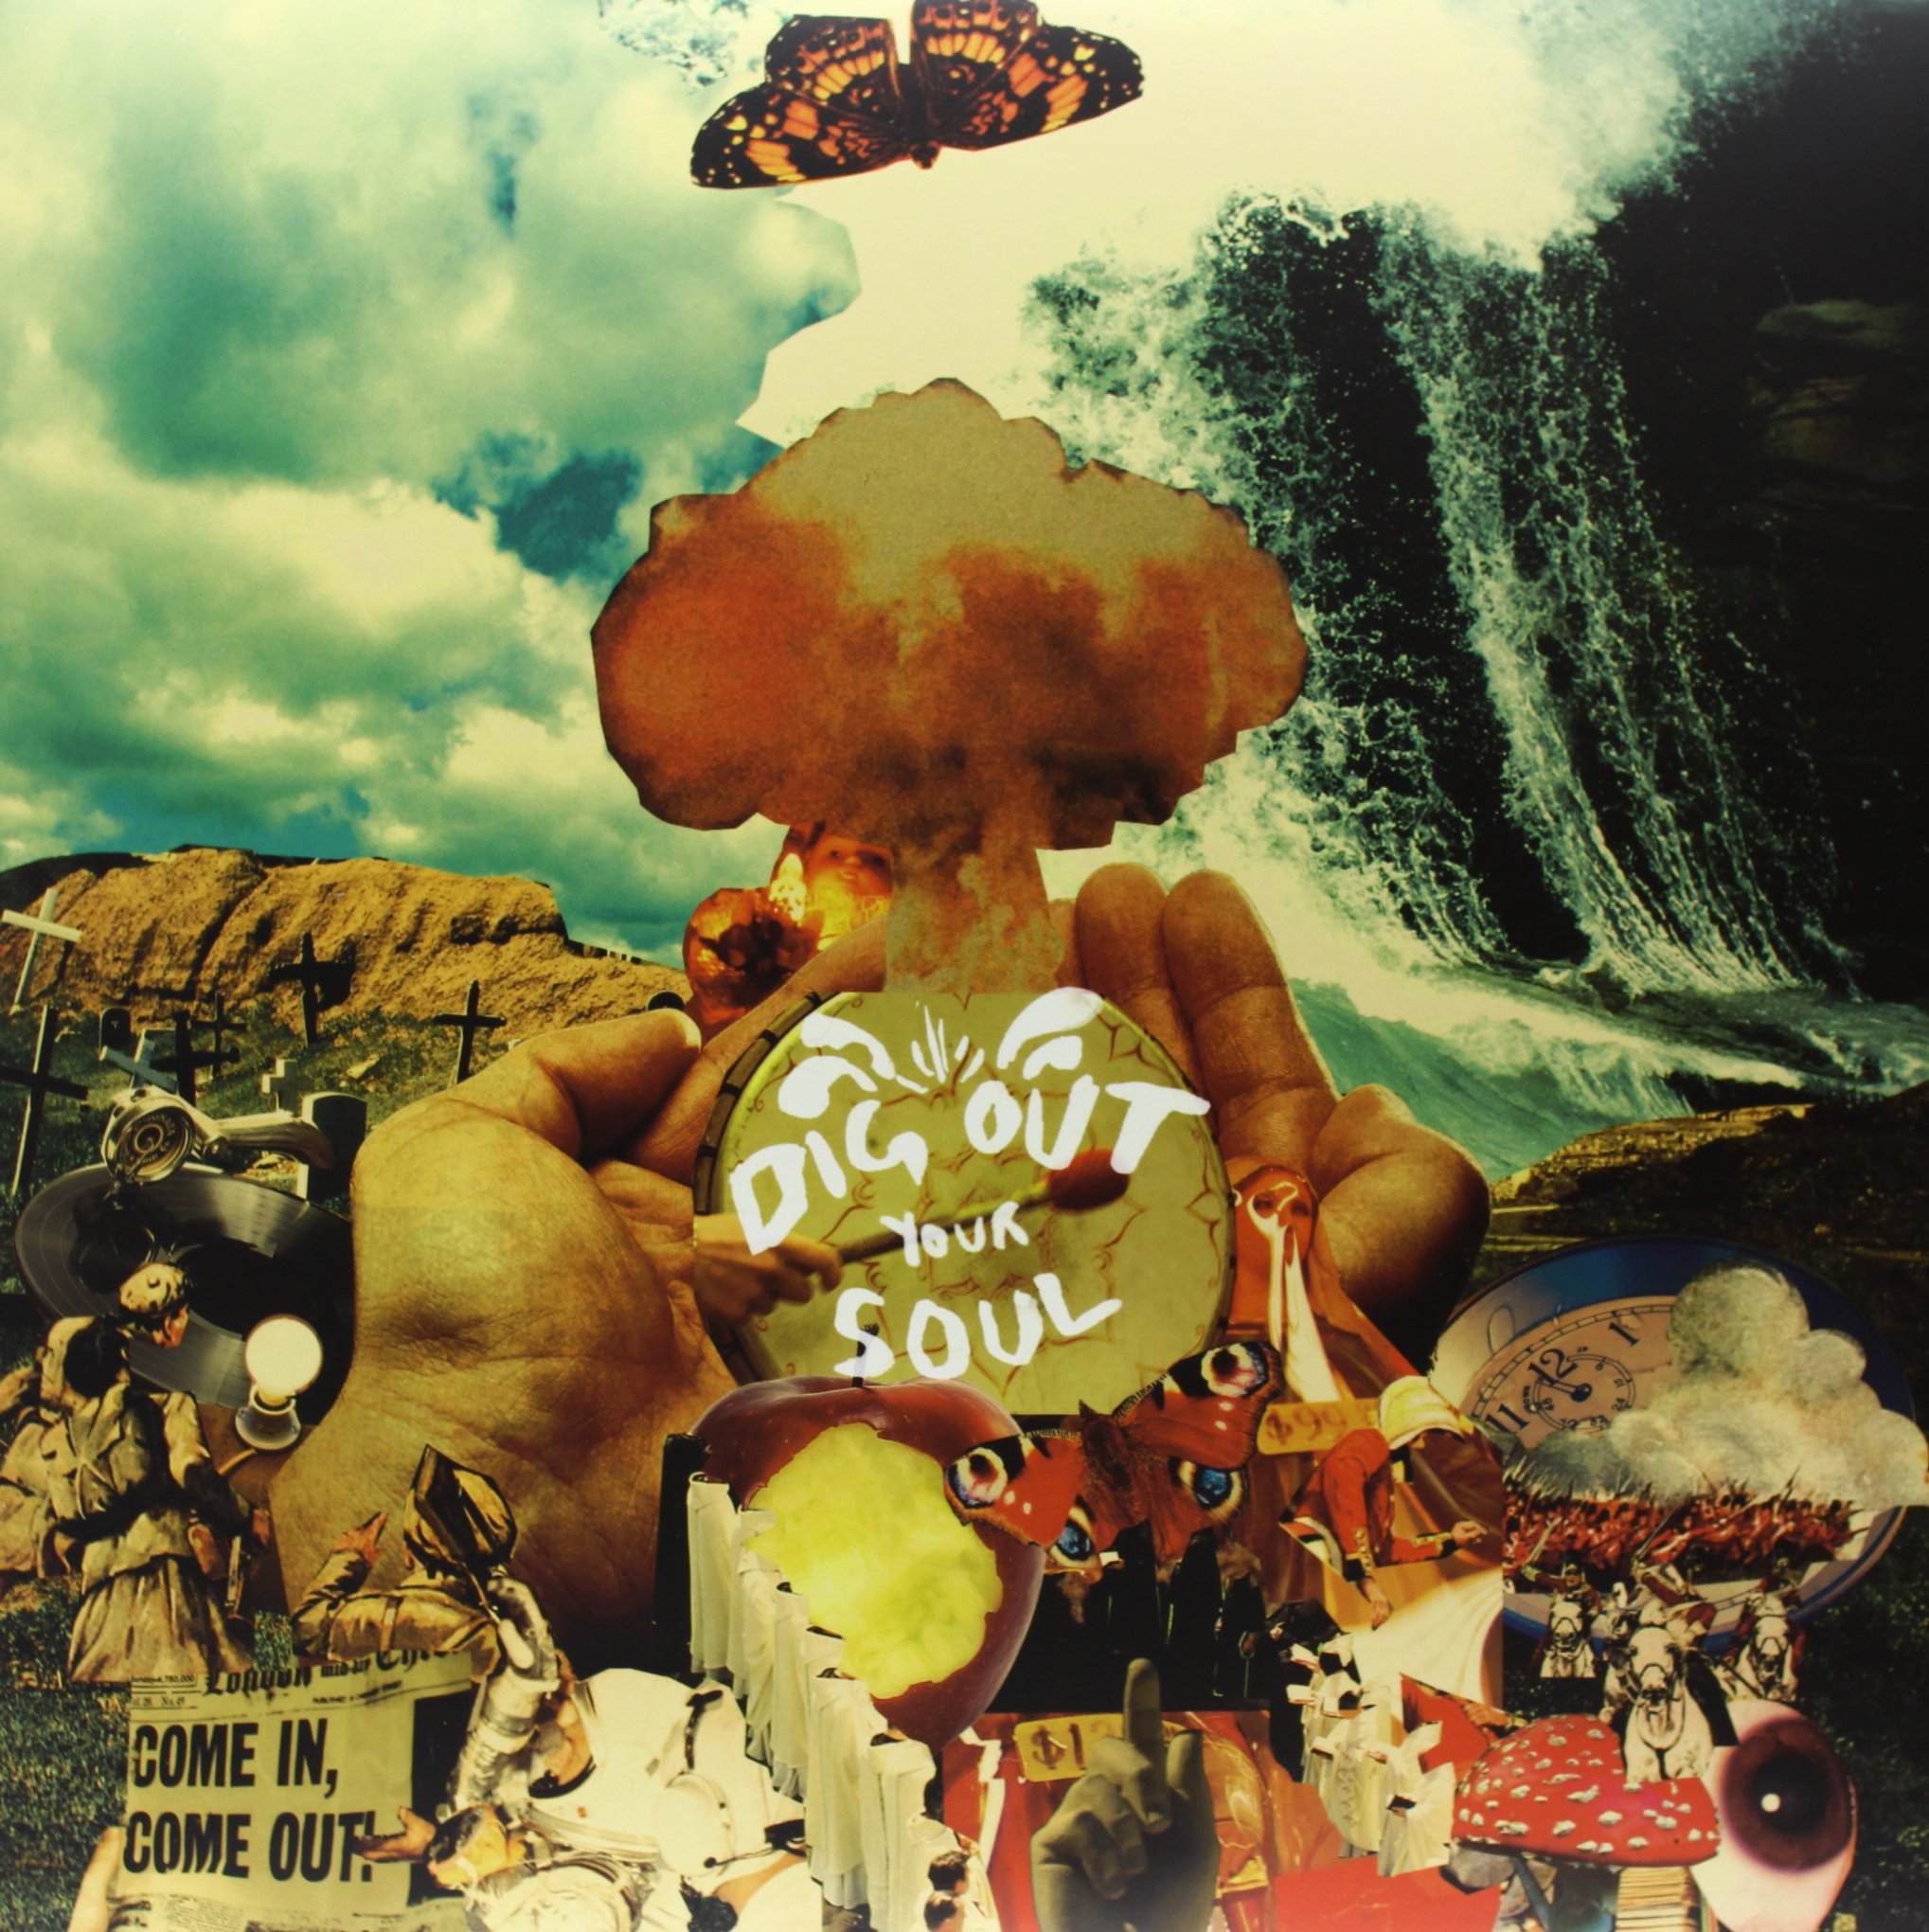 Dig Out Your Soul [2 LP][Reissue] by Big Brother Recordings Ltd